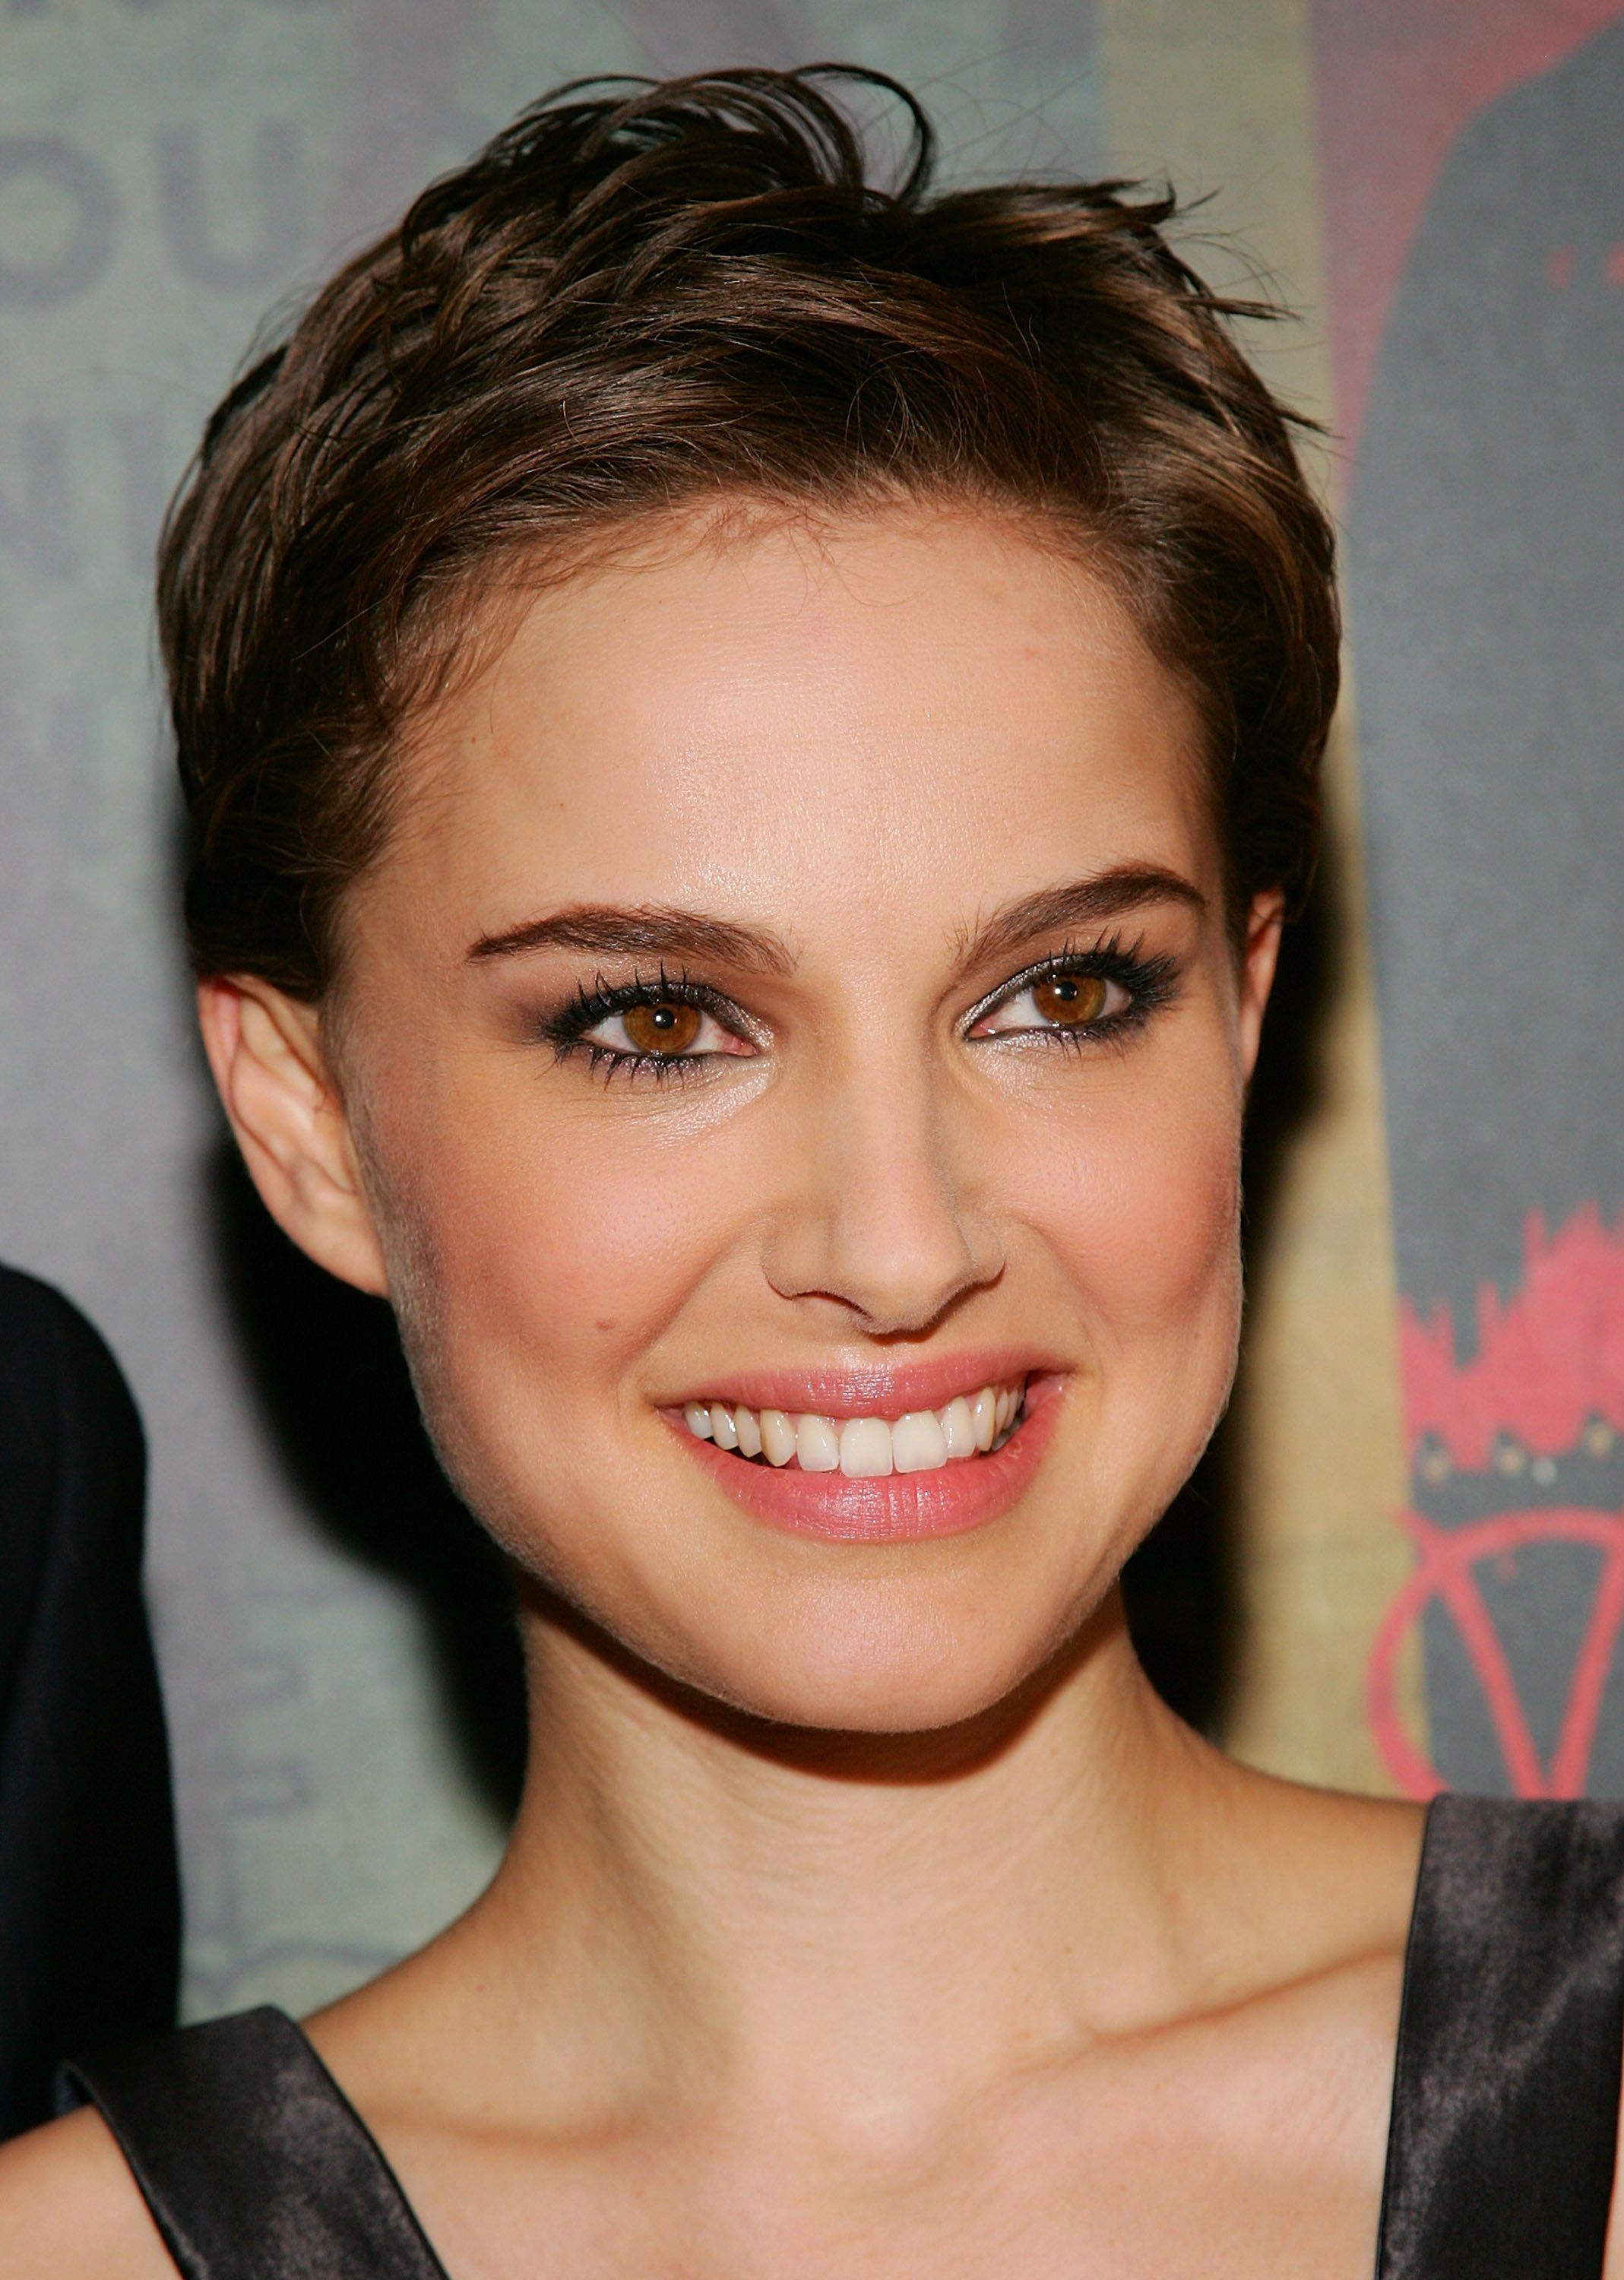 """Natalie Portman at the premiere of """"V for Vendetta""""in 2006 in New York City 